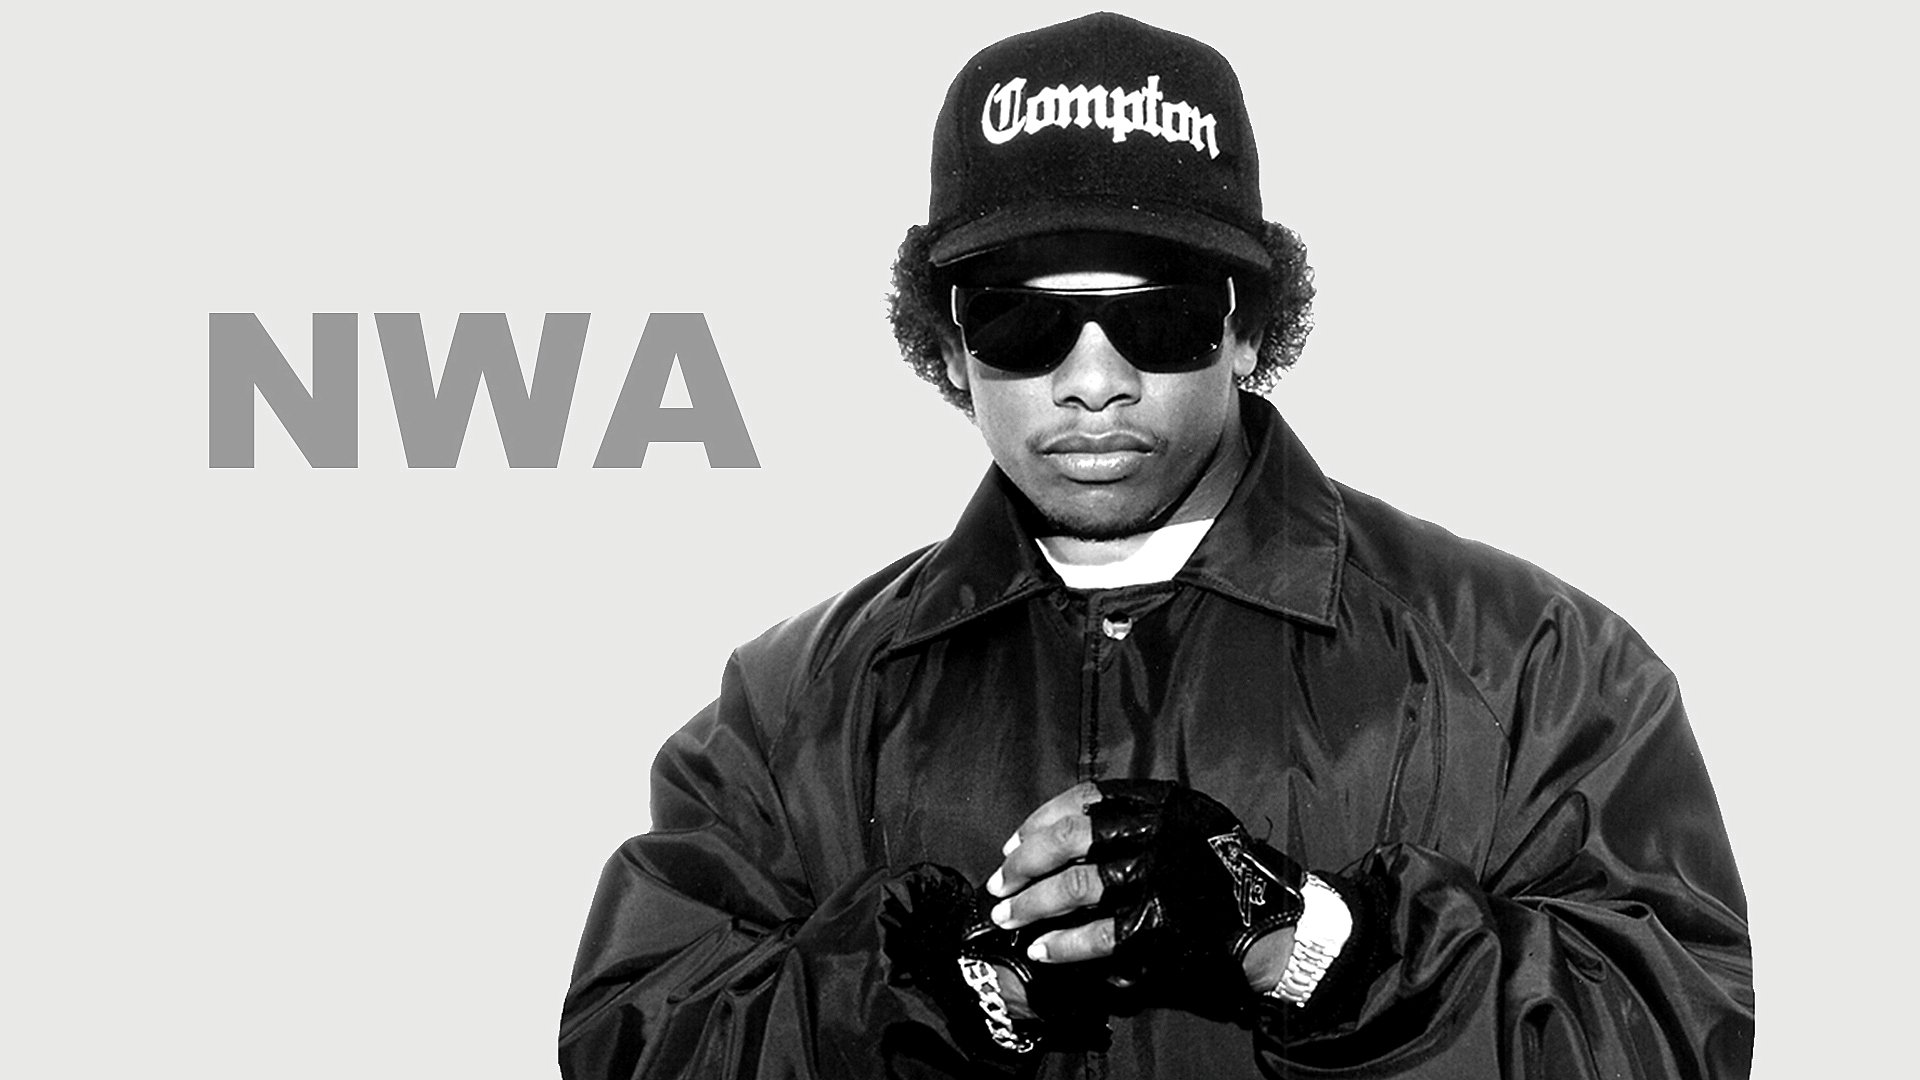 2 Eazy E Hd Wallpapers Background Images Wallpaper Abyss